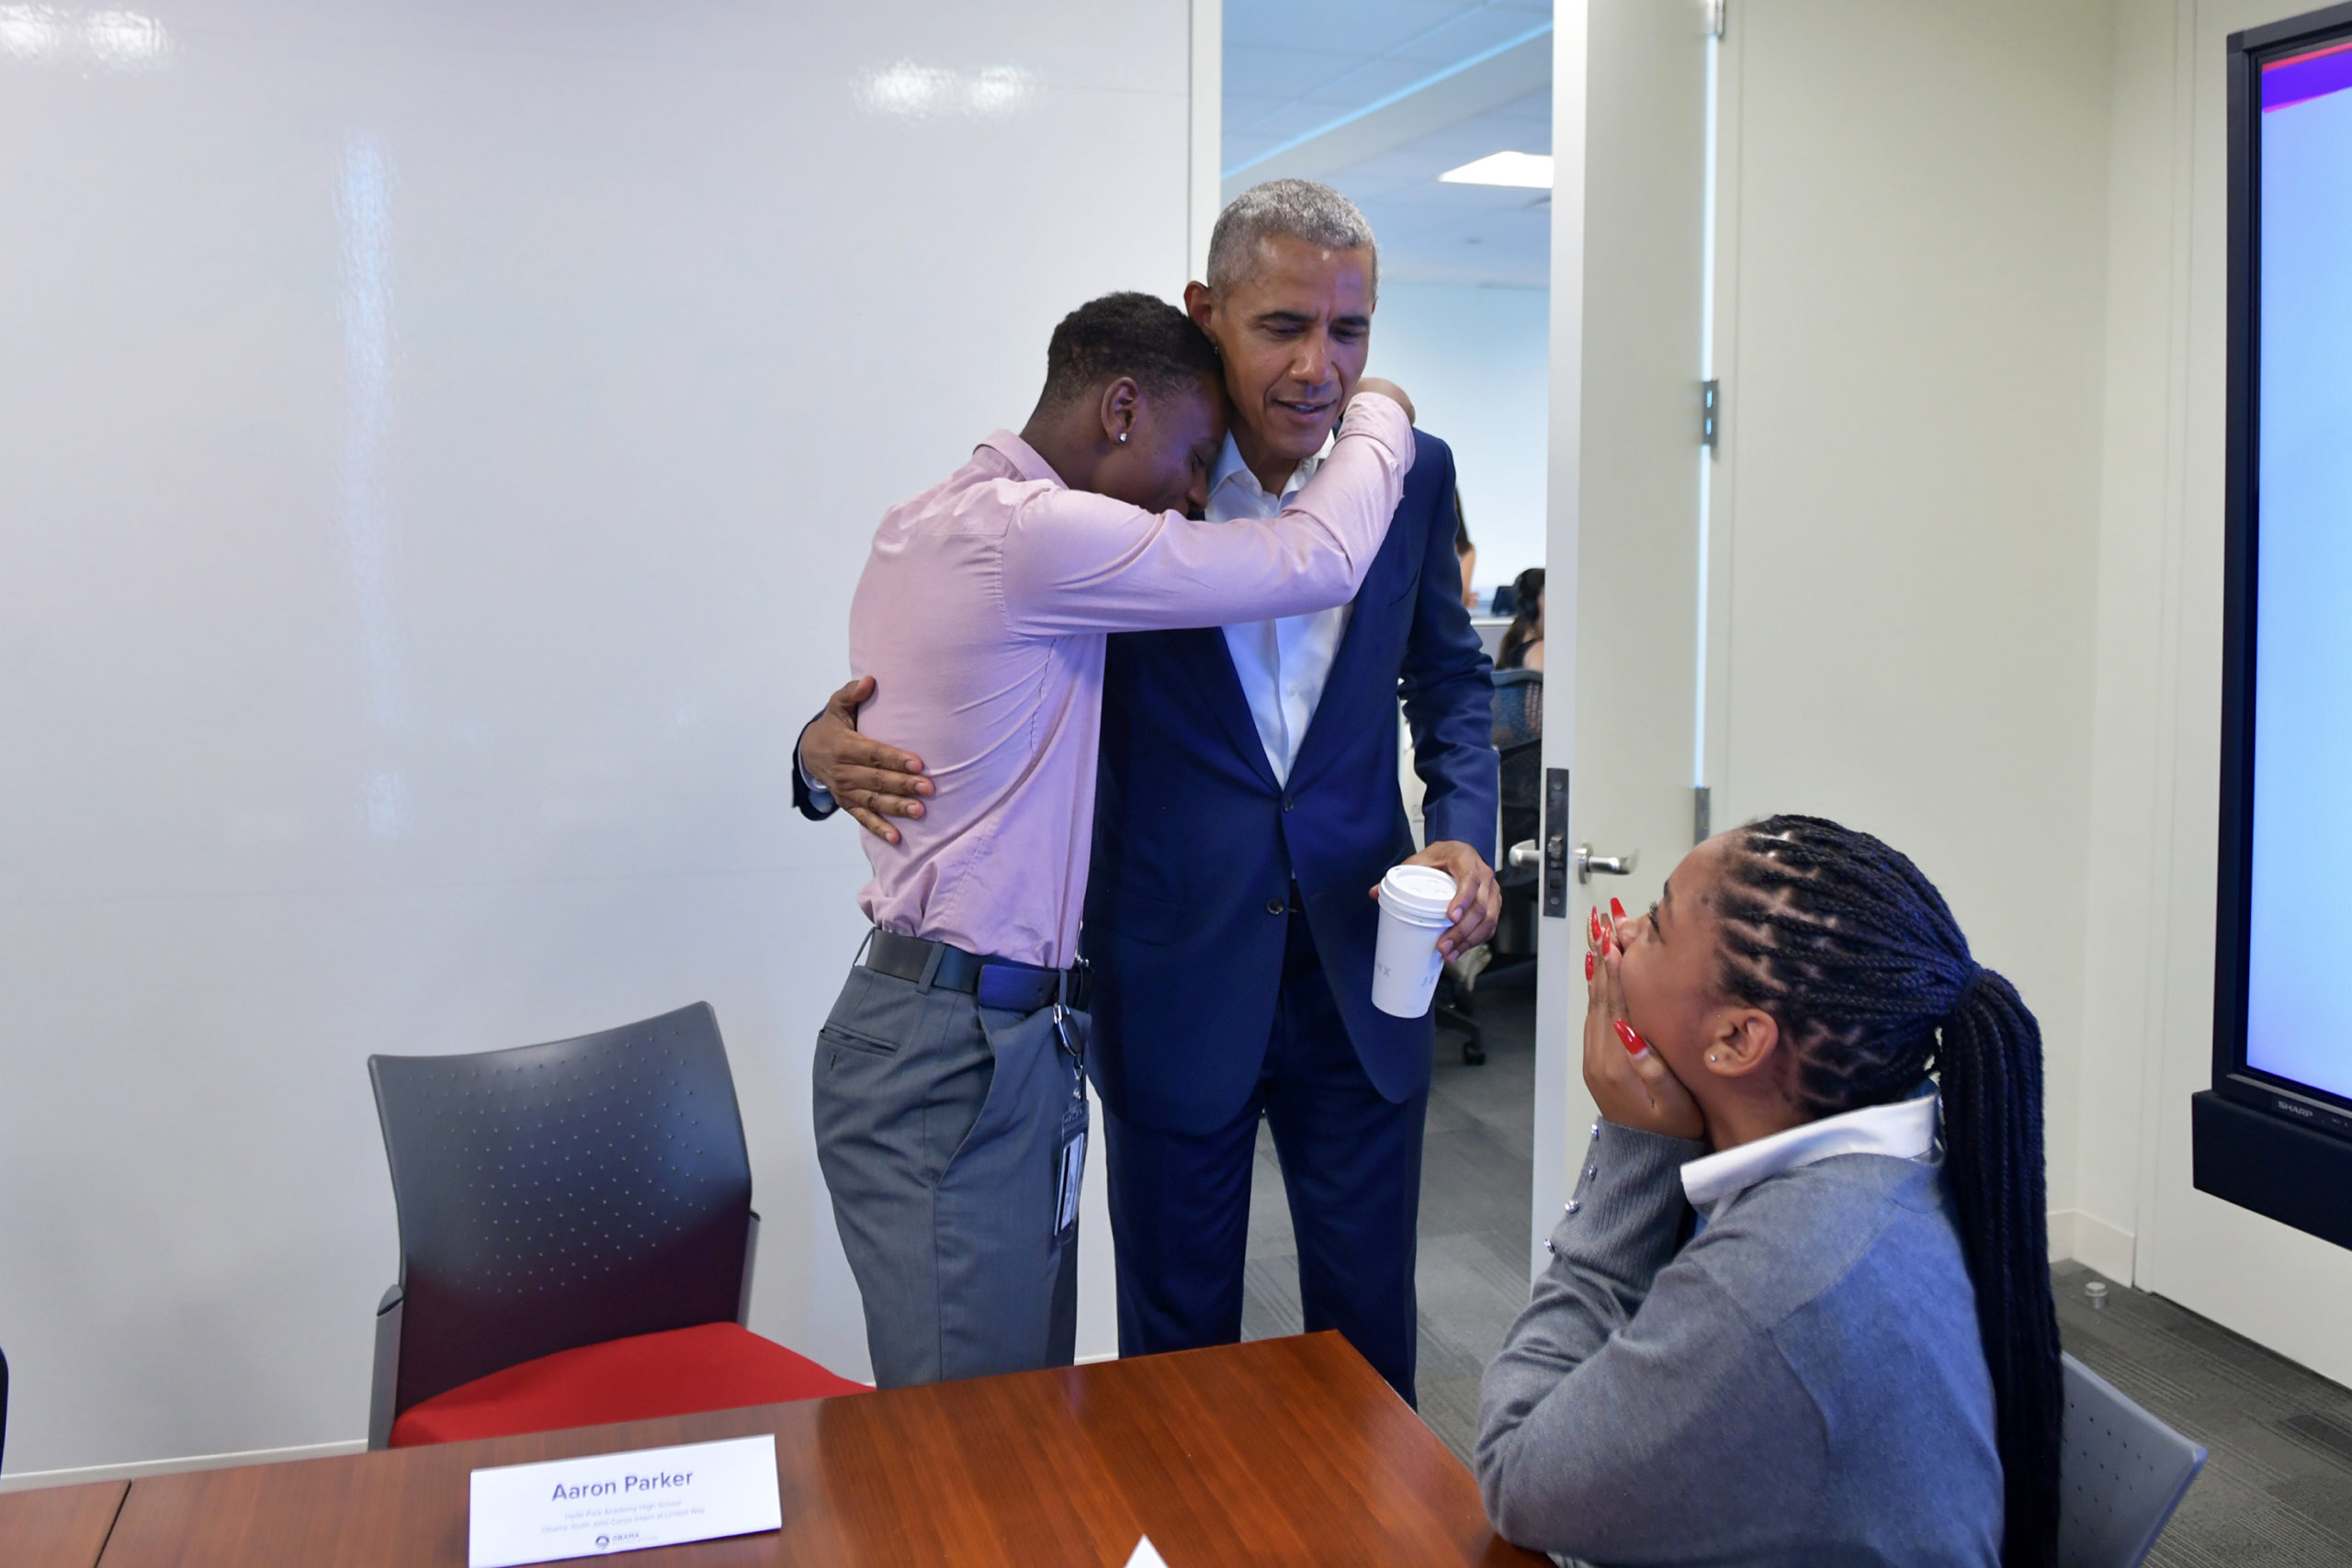 A young man hugs President Obama from the side as he holds a cup of coffee.